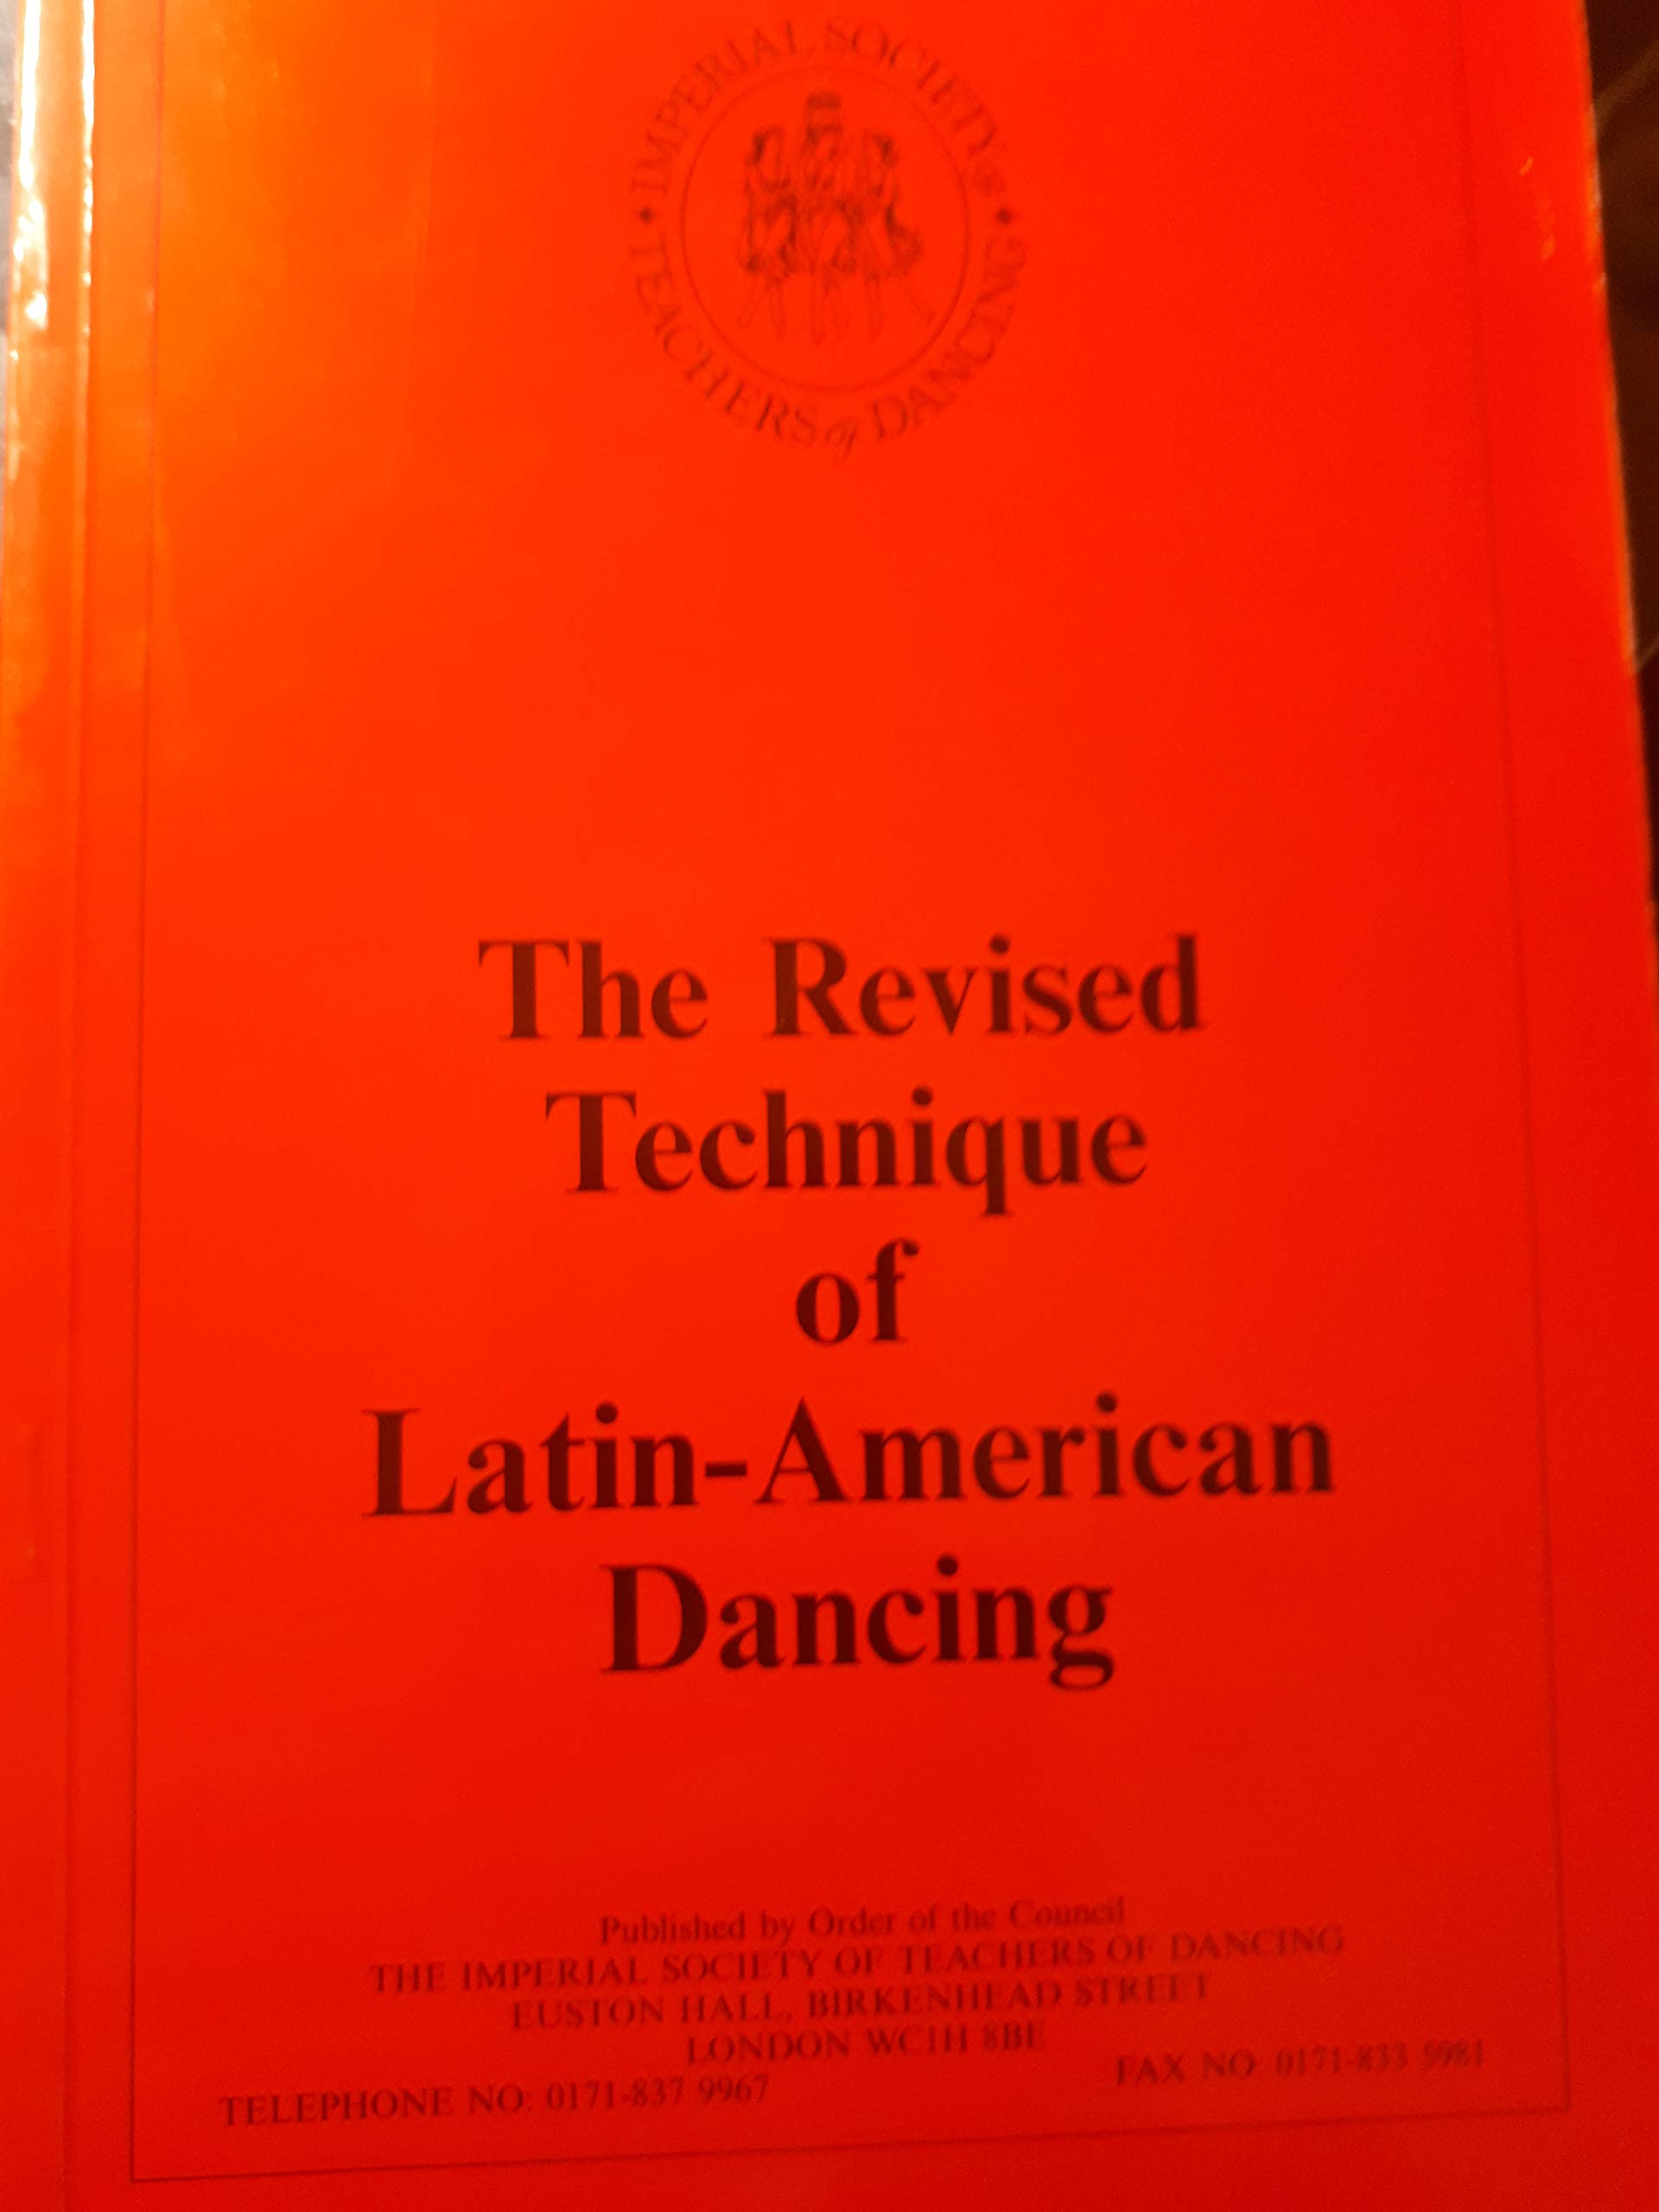 Wdsf Technique Book Pdf